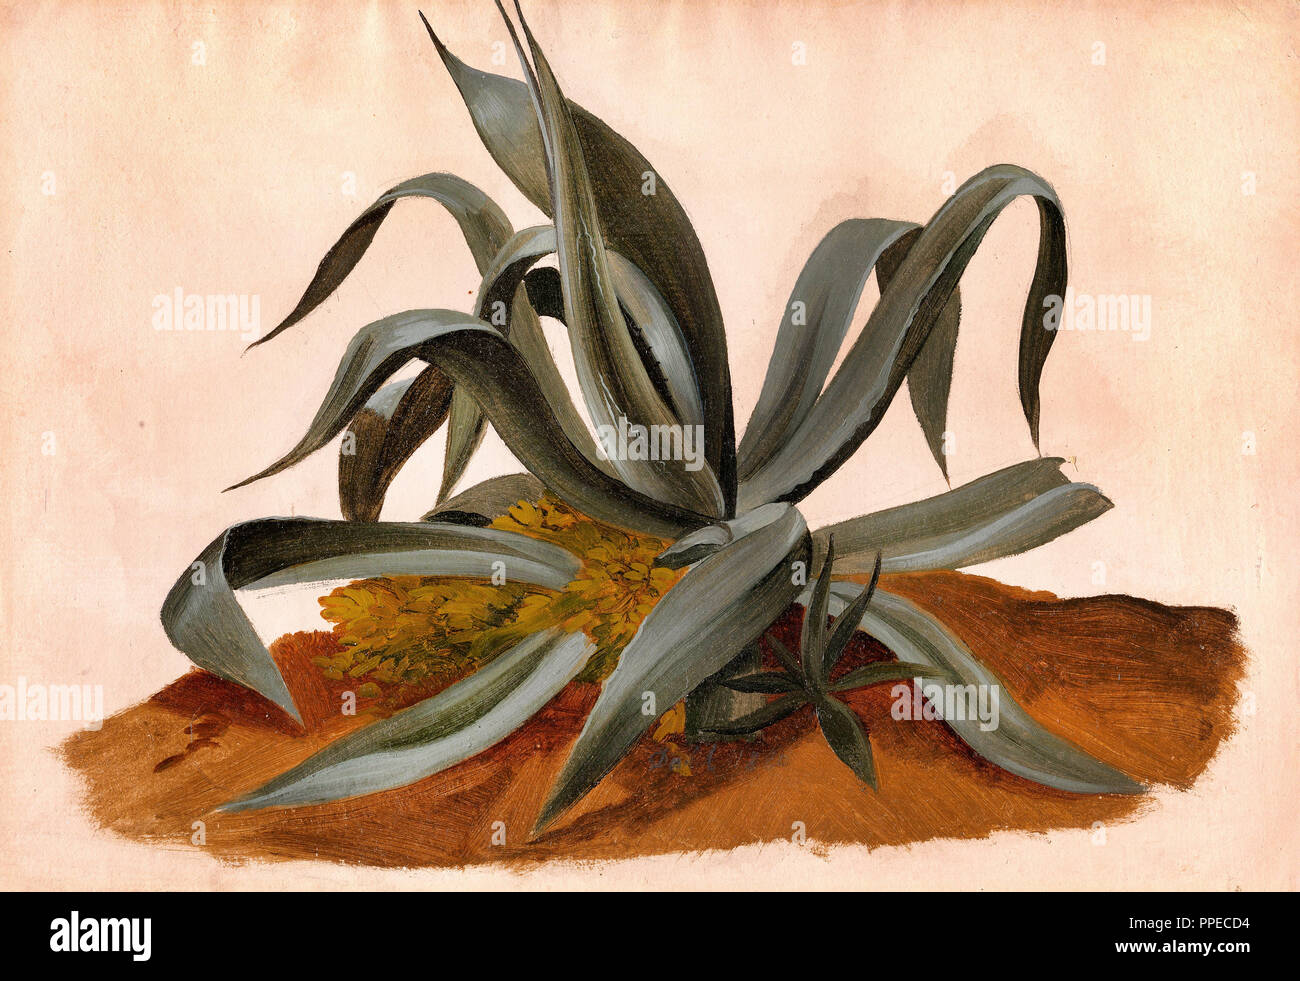 Johan Christian Dahl - Study of an Agave 1820 Oil on canvas. National Gallery of Norway, Oslo, Norway. - Stock Image